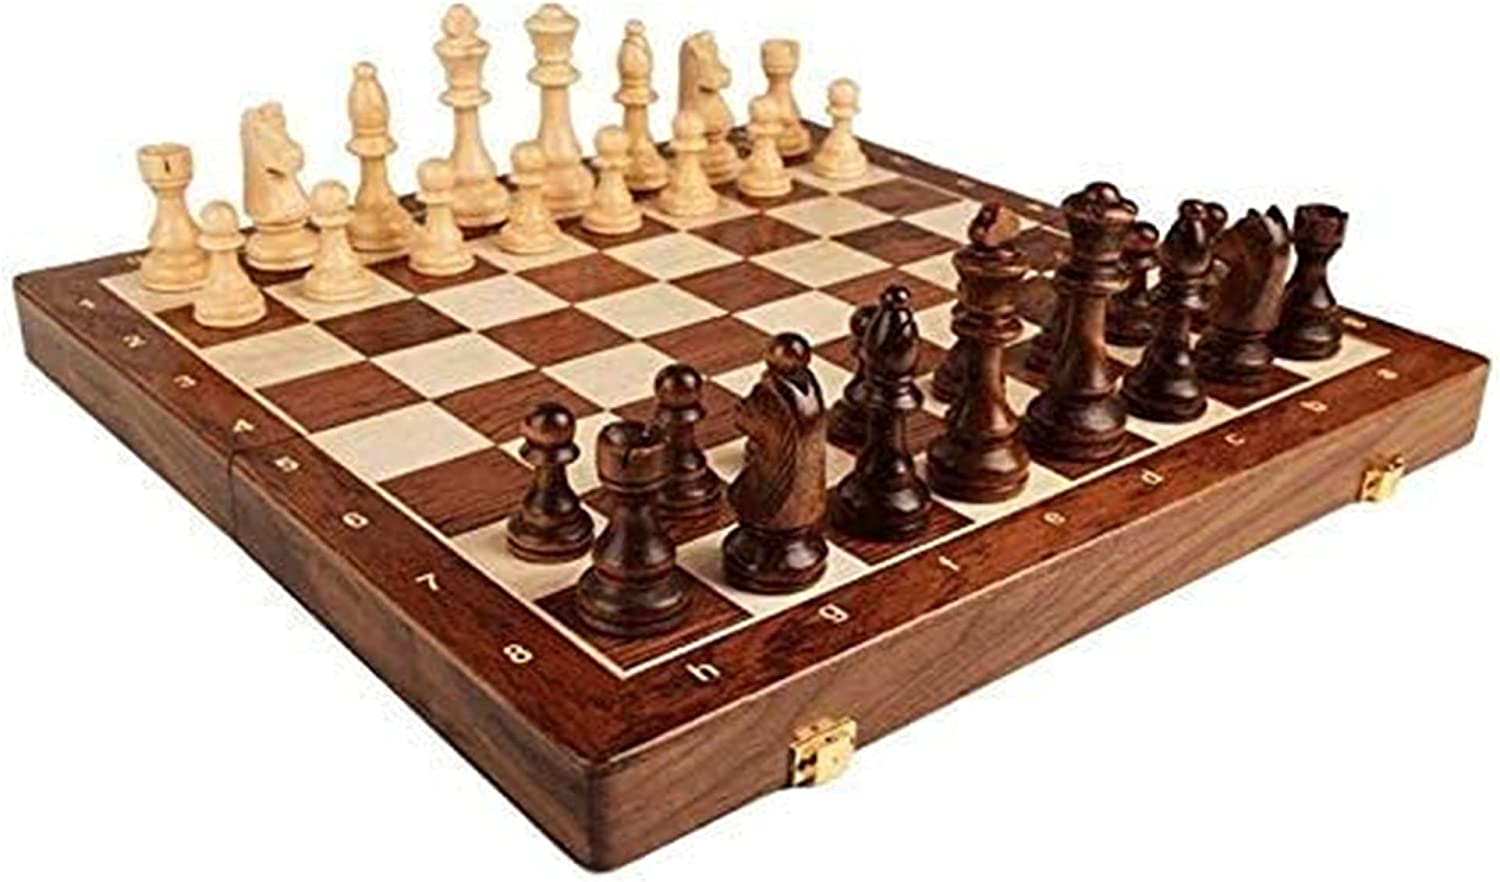 MTCWD Chess 2021 model Set Games Credence Travel Adults Kids Board Set-S